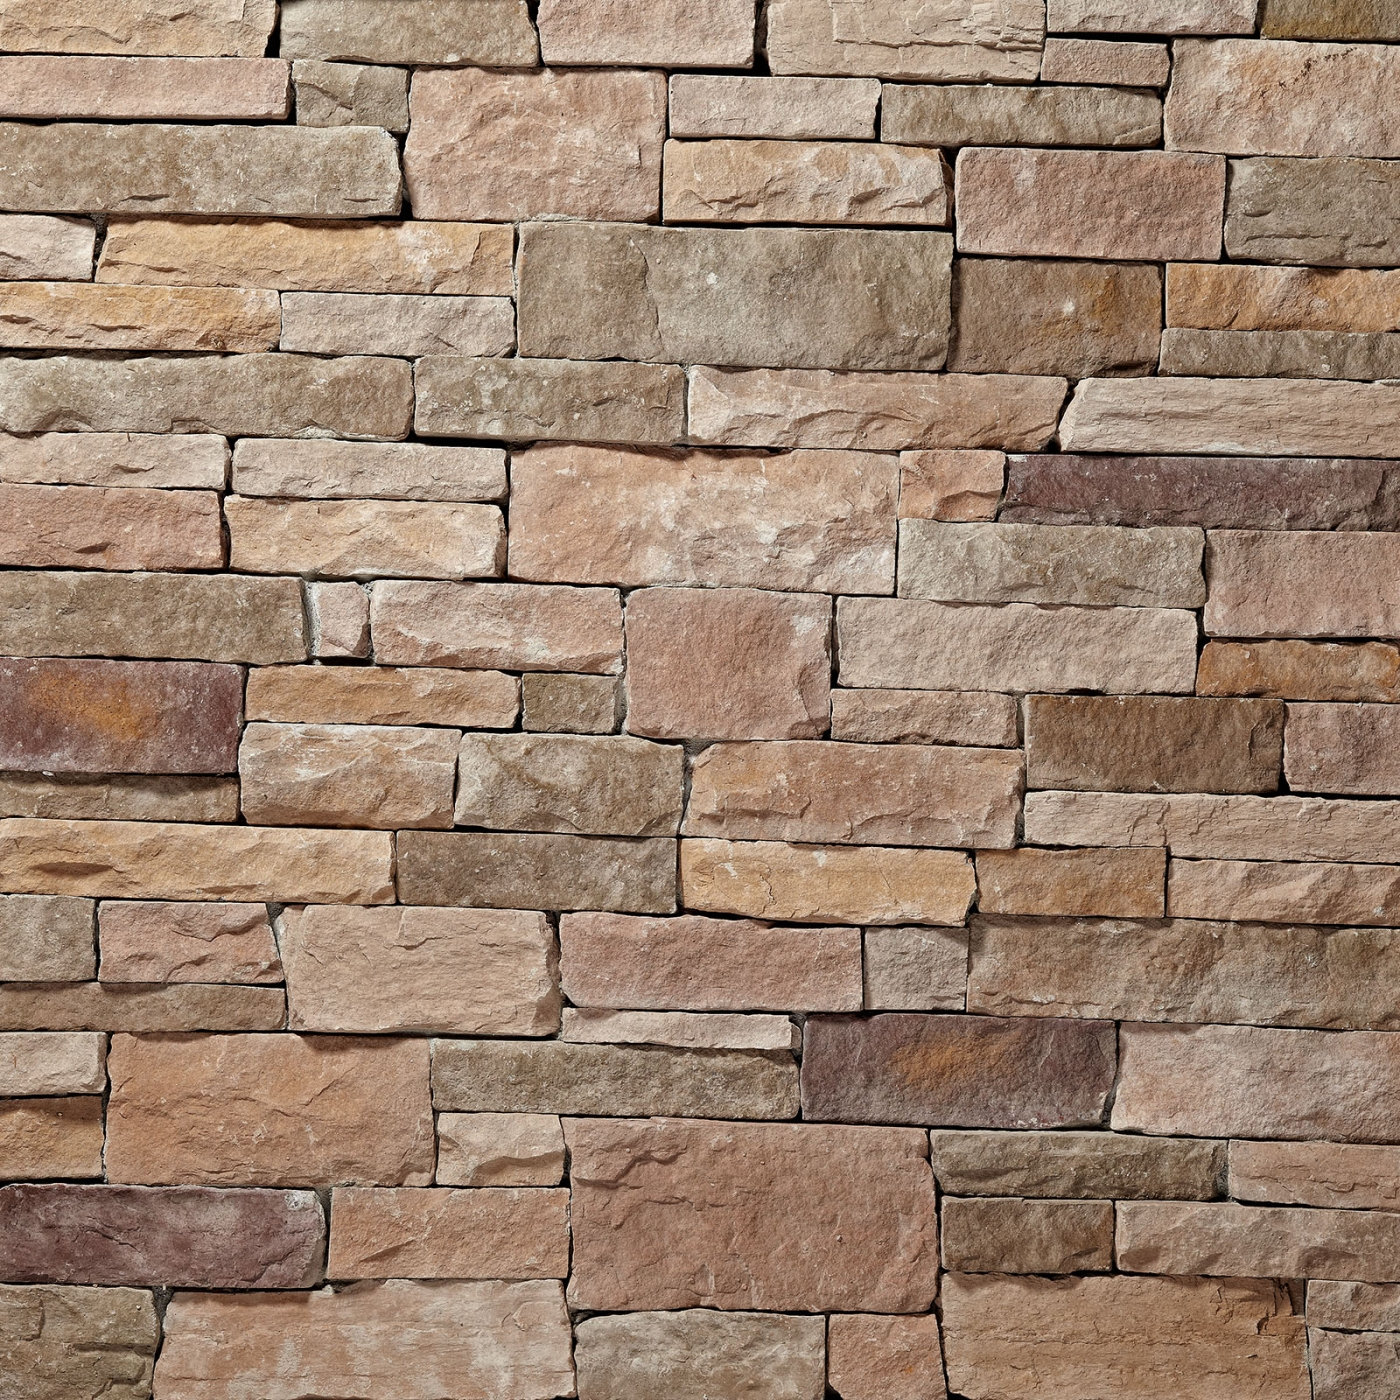 Autumn/Buckeye (50%/50%) Ledgestone Stone Veneer from Environmental StoneWorks